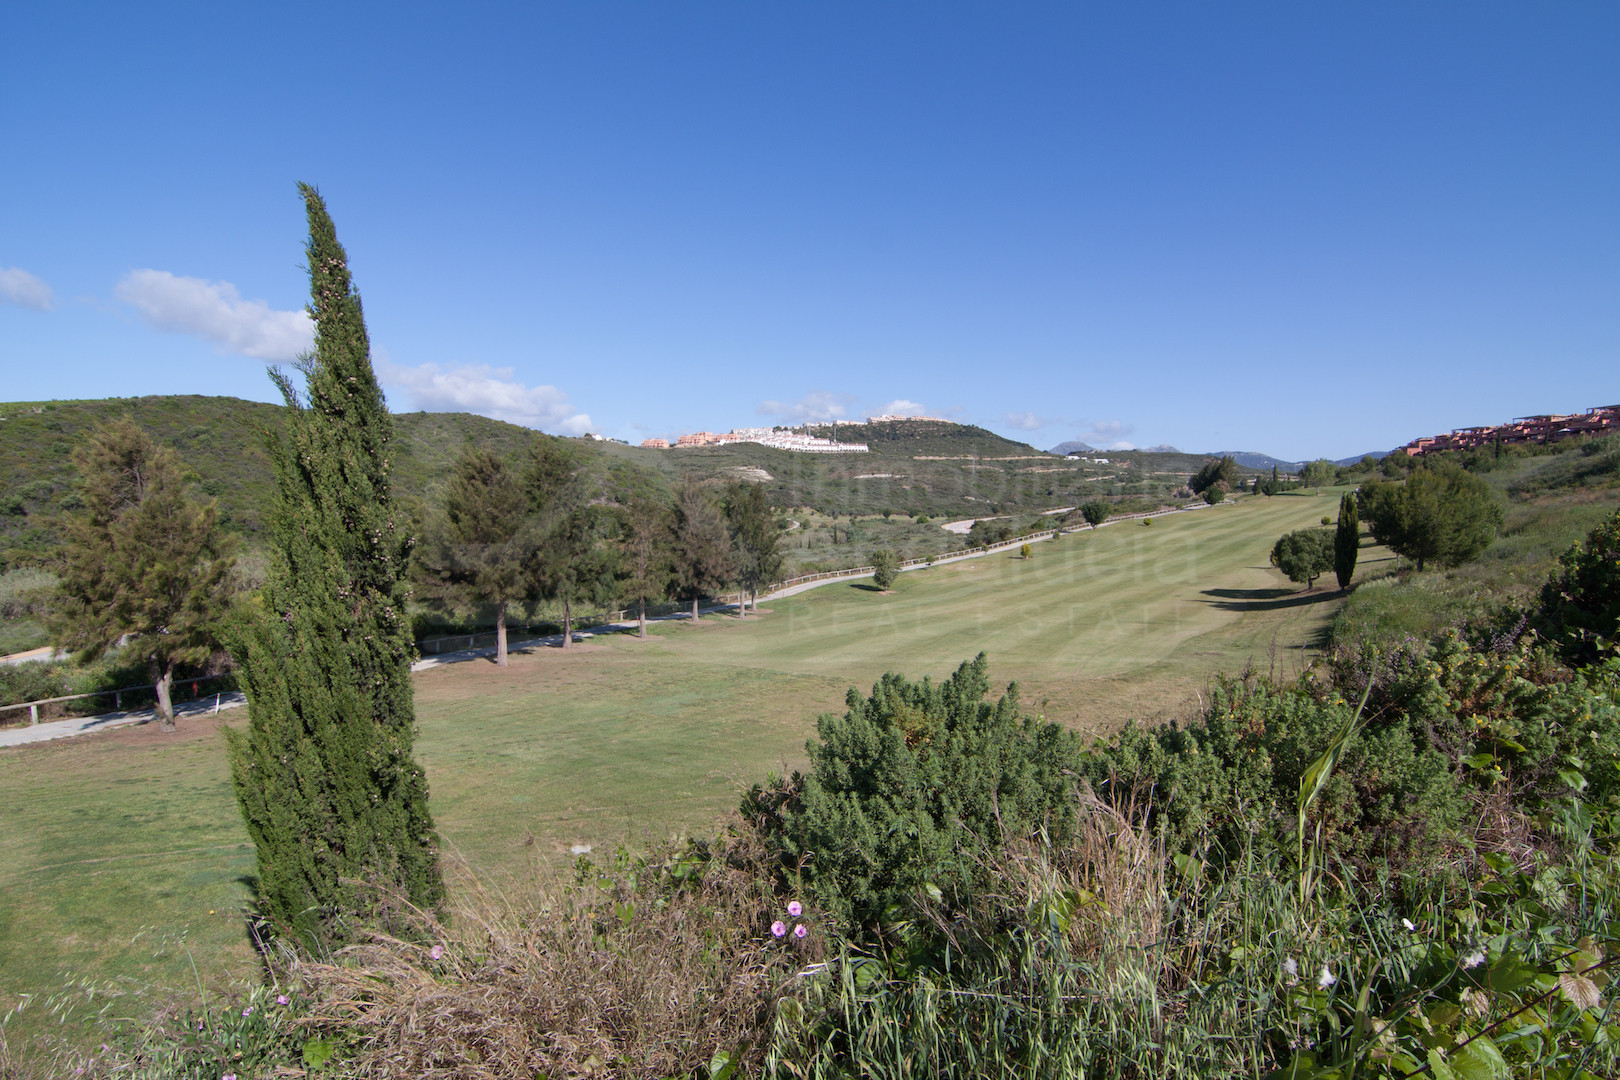 688m2 golf villa plot for sale with permission to build in Casares